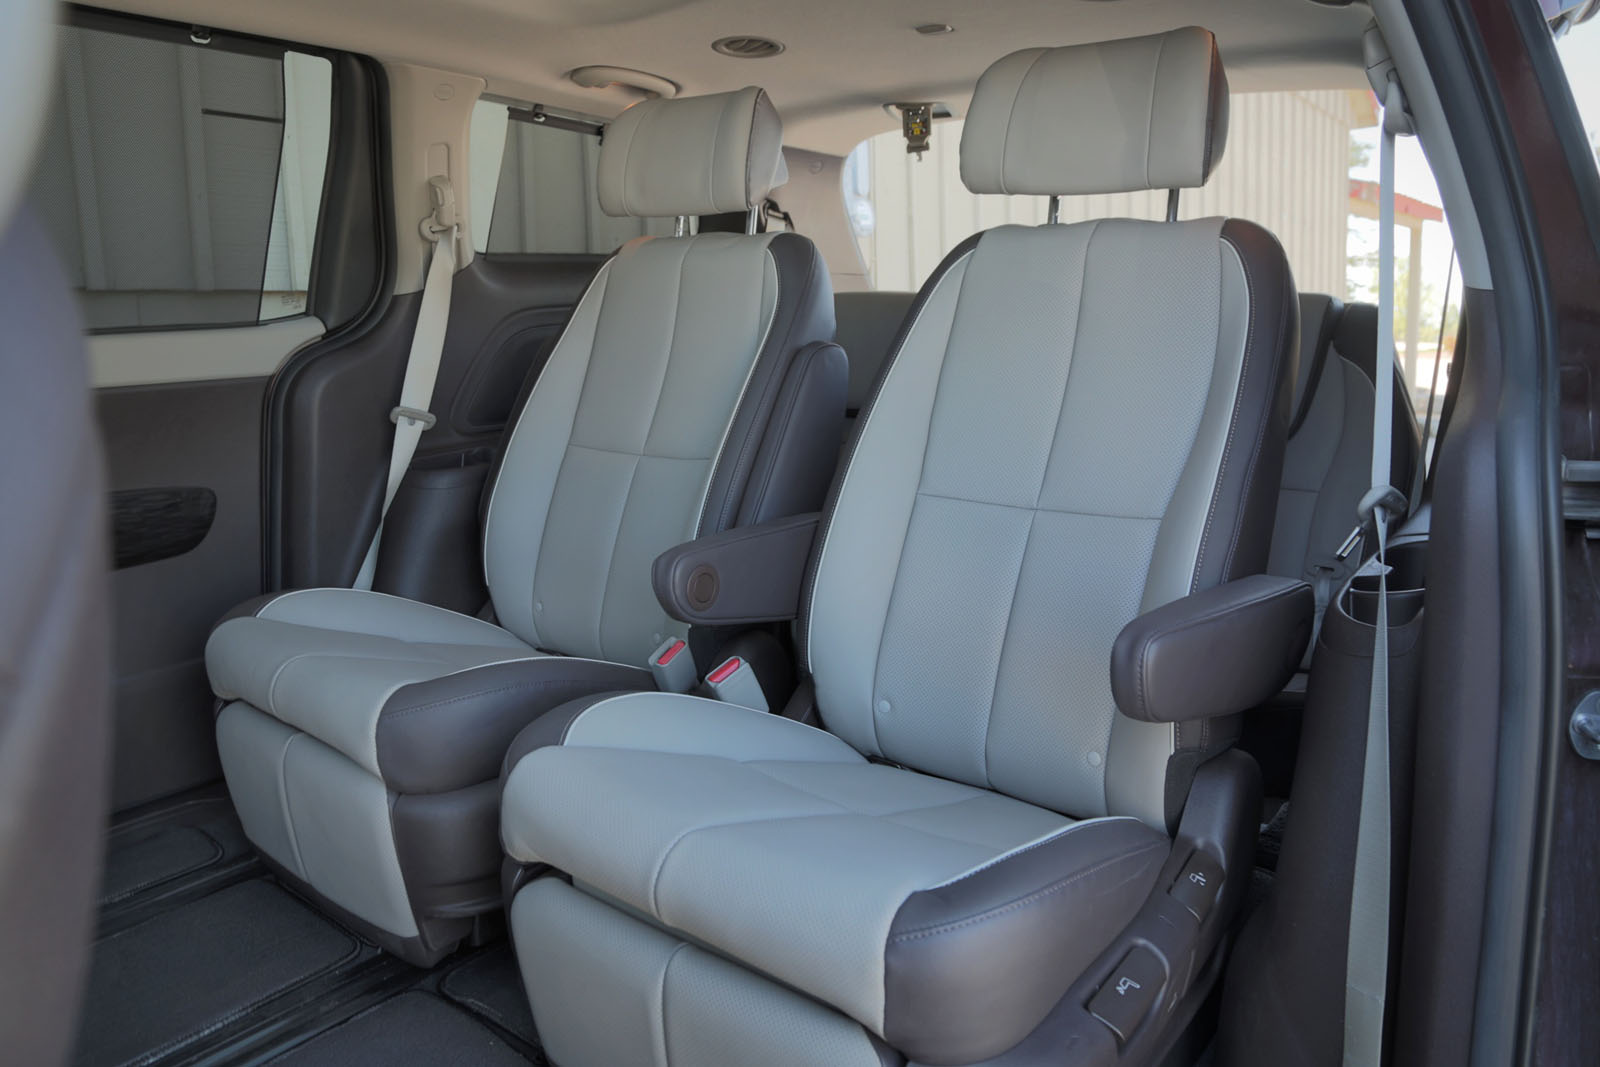 Headroom is also 1.5-inches less in the Sedona which compounded with the Kiau0027s lower seat cushion makes it much tighter in the back of the ... & 2015 Kia Sedona vs. 2015 Toyota Sienna - AutoGuide.com News islam-shia.org